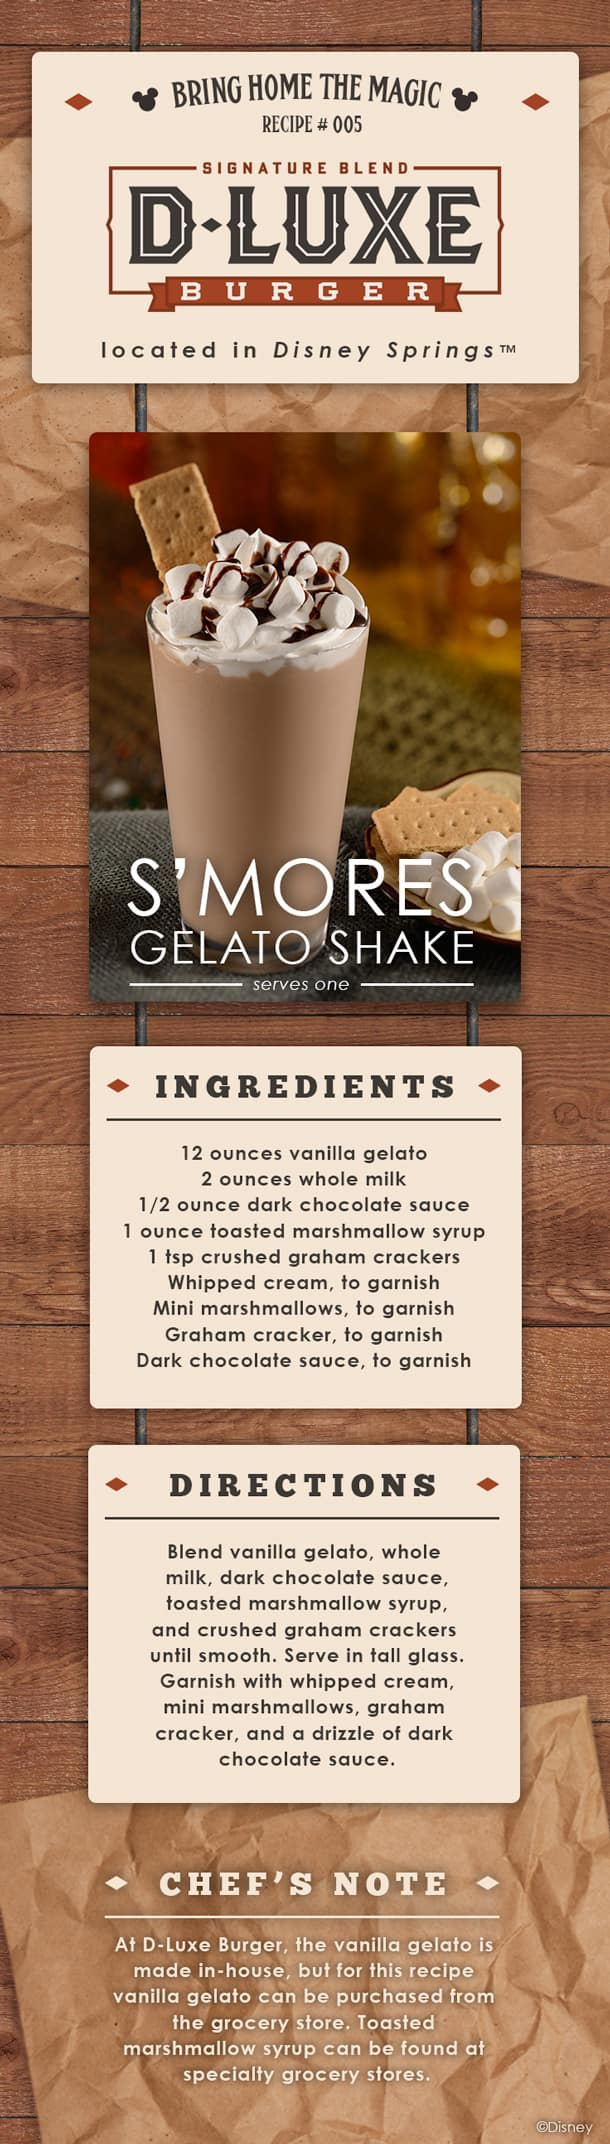 Recipe: Celebrate National S'mores Day With Gelato Shake From D-Luxe Burger